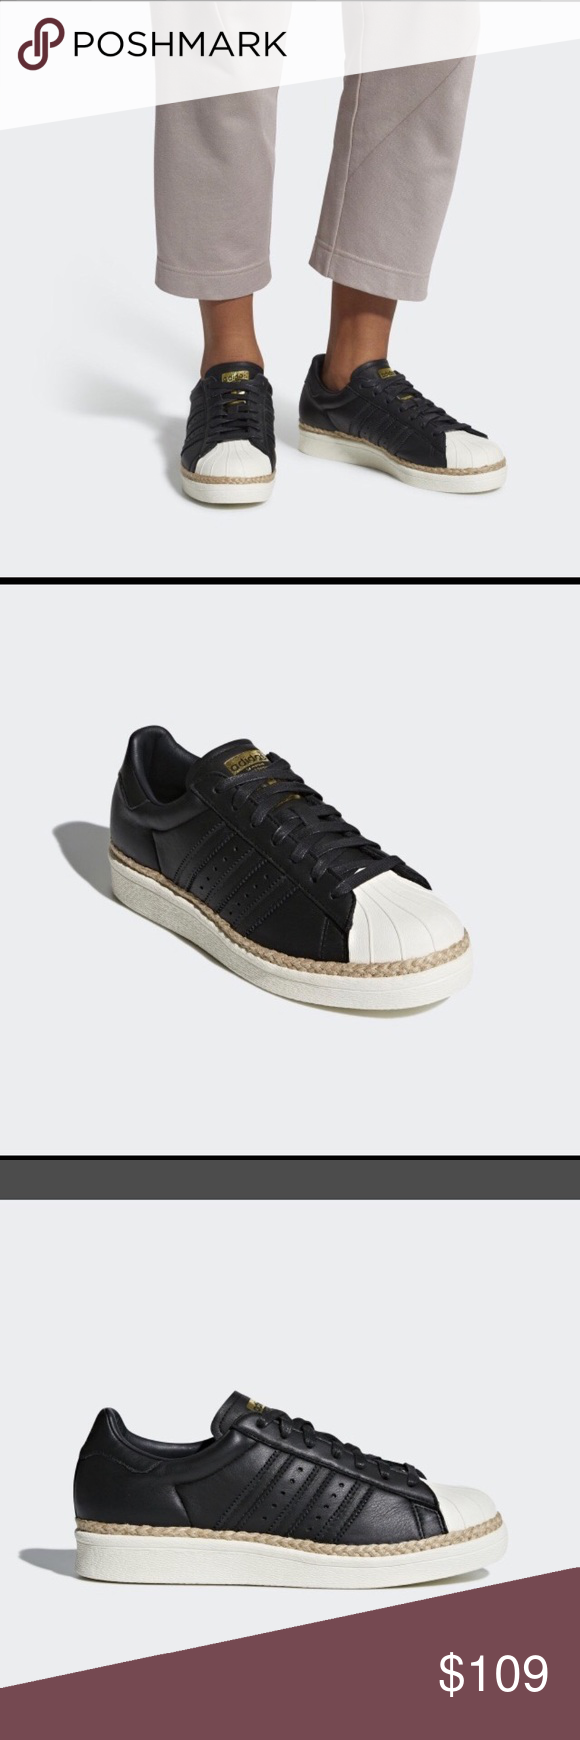 2332e396b46 Adidas 80 s Superstars Shell Toe Sneakers Adidas 80 s Superstars Shell Toe  Sneakers Size 8 Black leather upper with a jute rope detailing adidas Shoes  ...